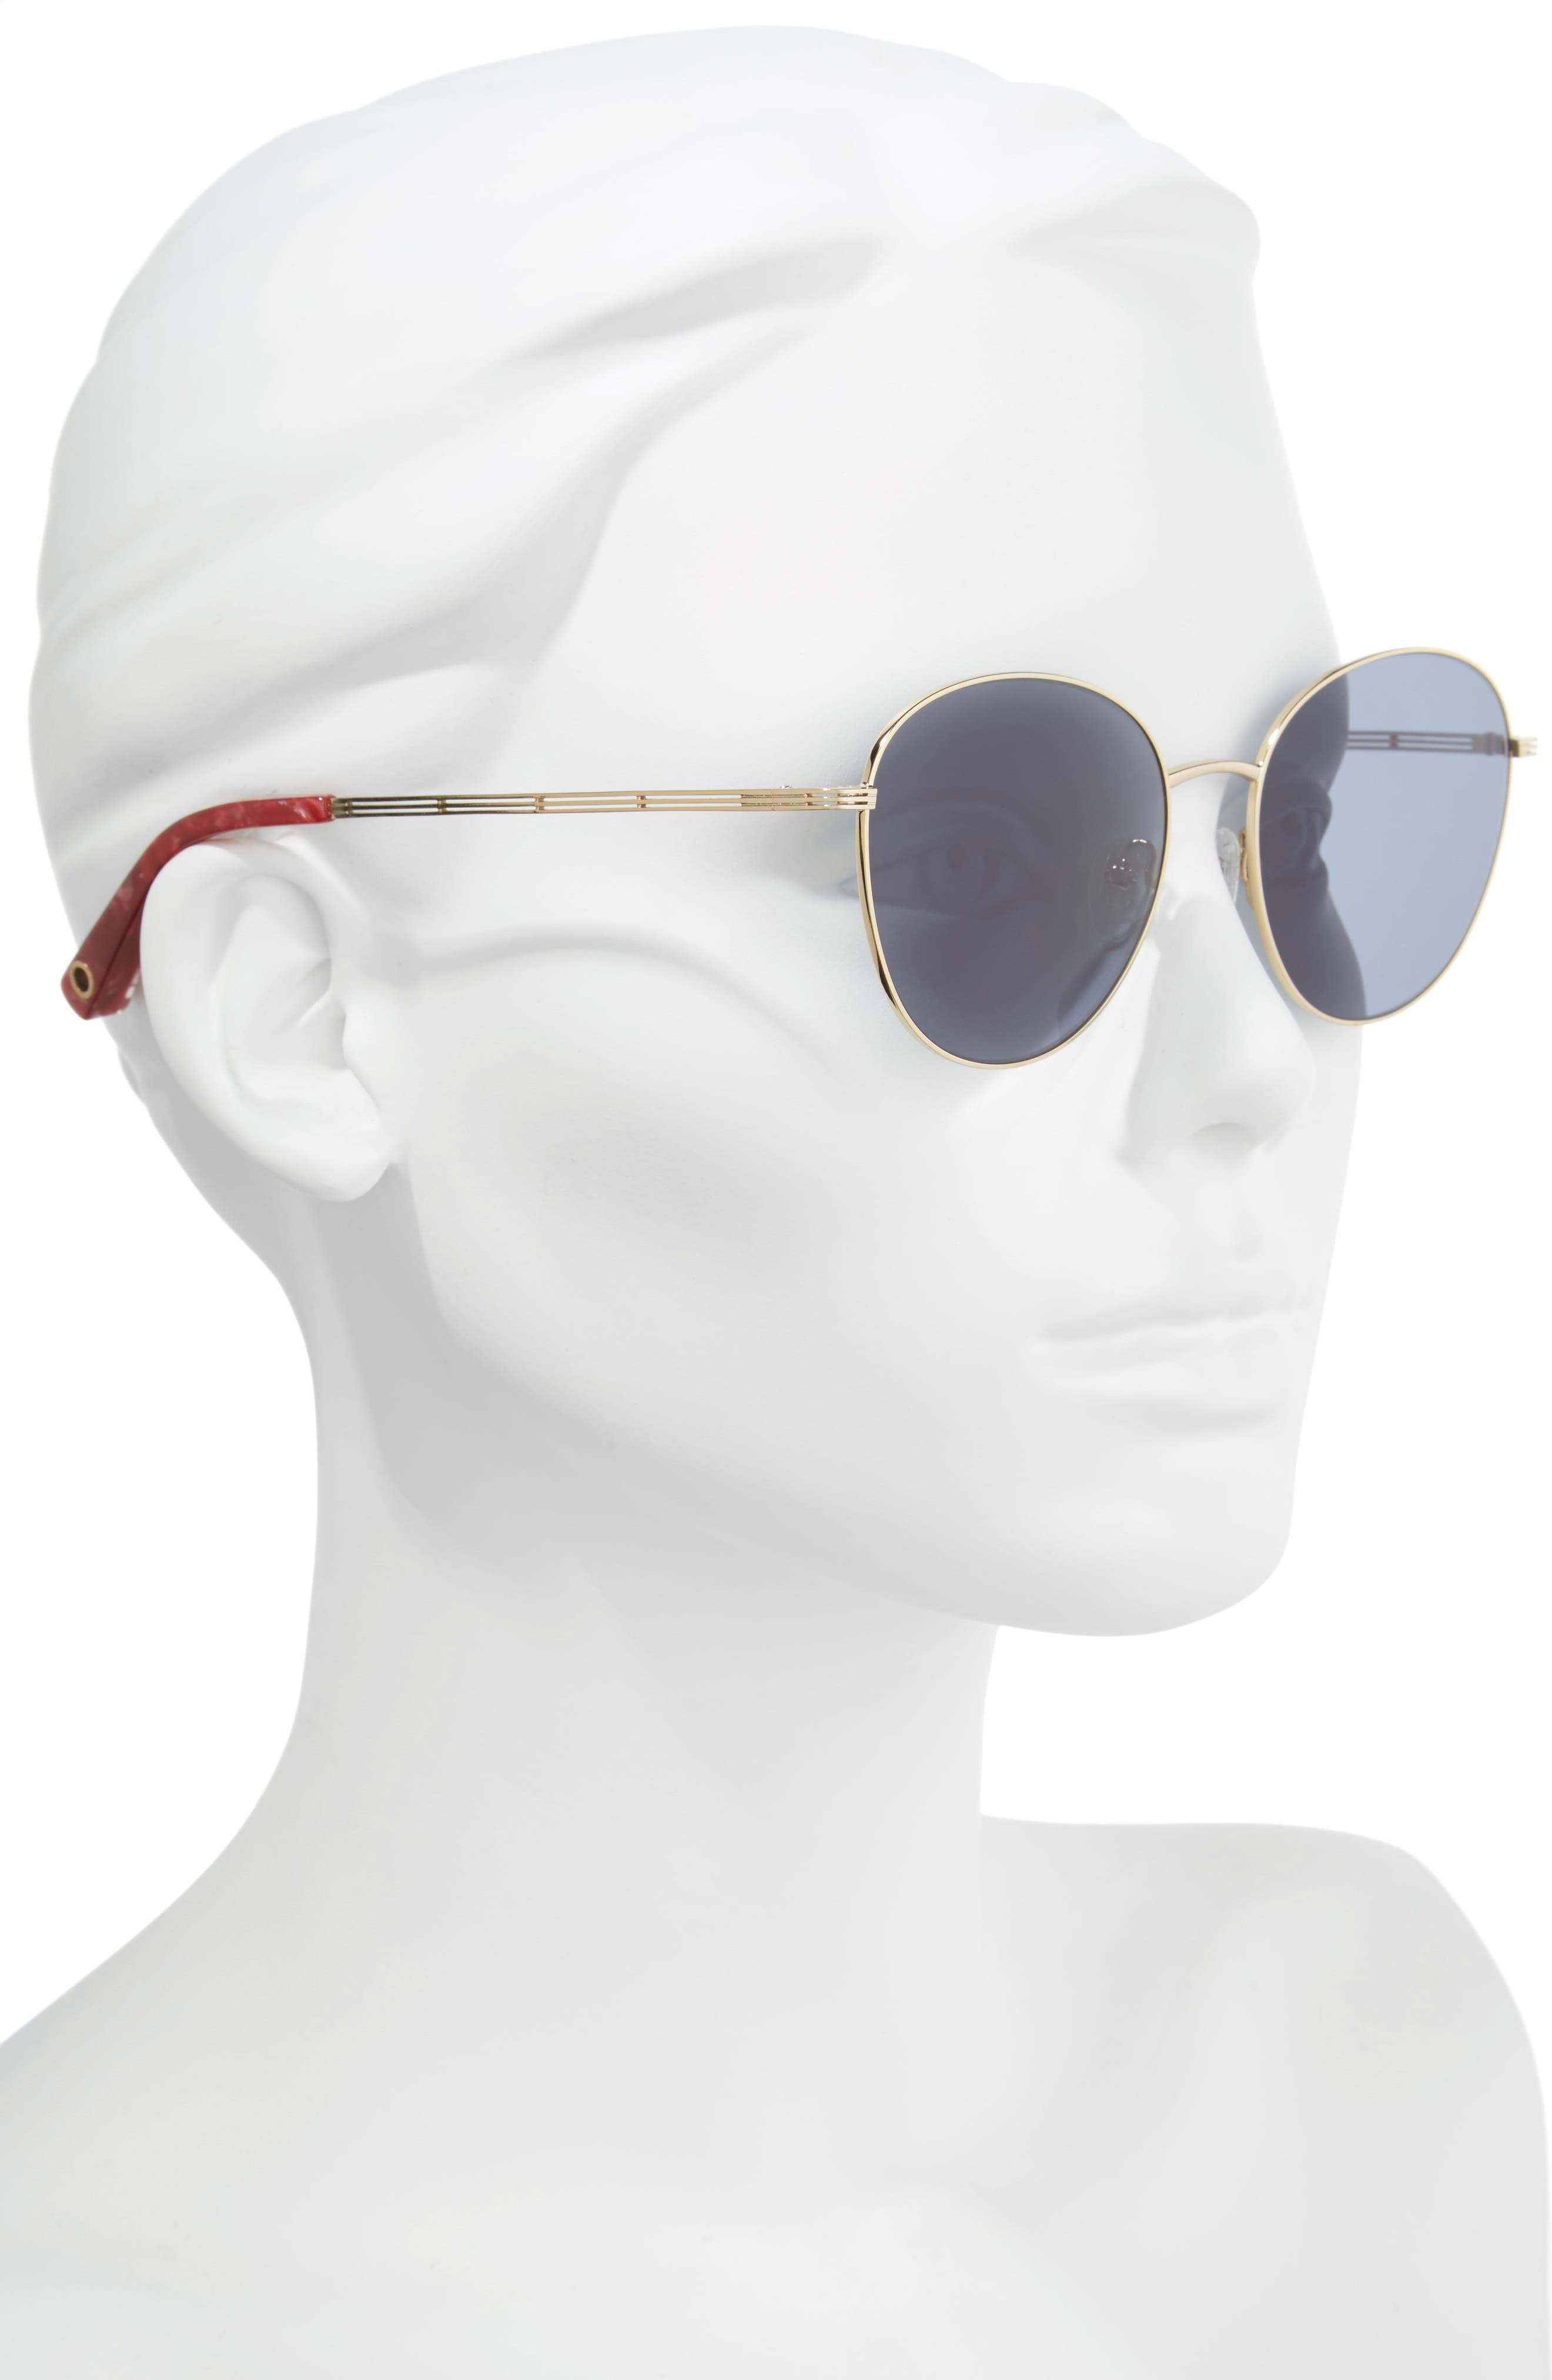 Gilmour 53mm Round Sunglasses & Beaded Chain,                             Alternate thumbnail 5, color,